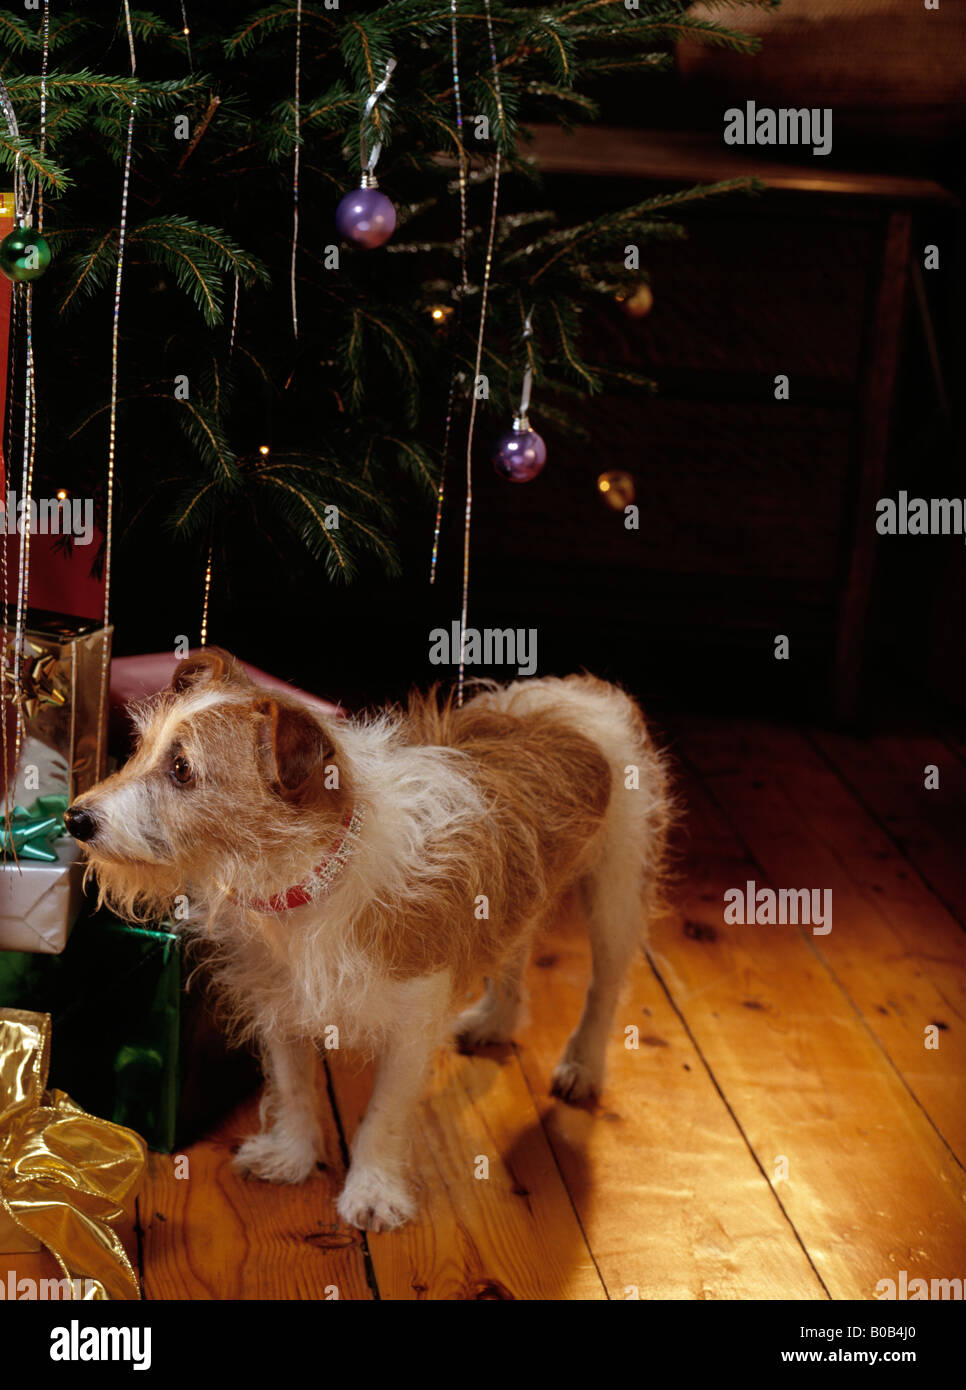 dog near presents under Christmas tree - Stock Image